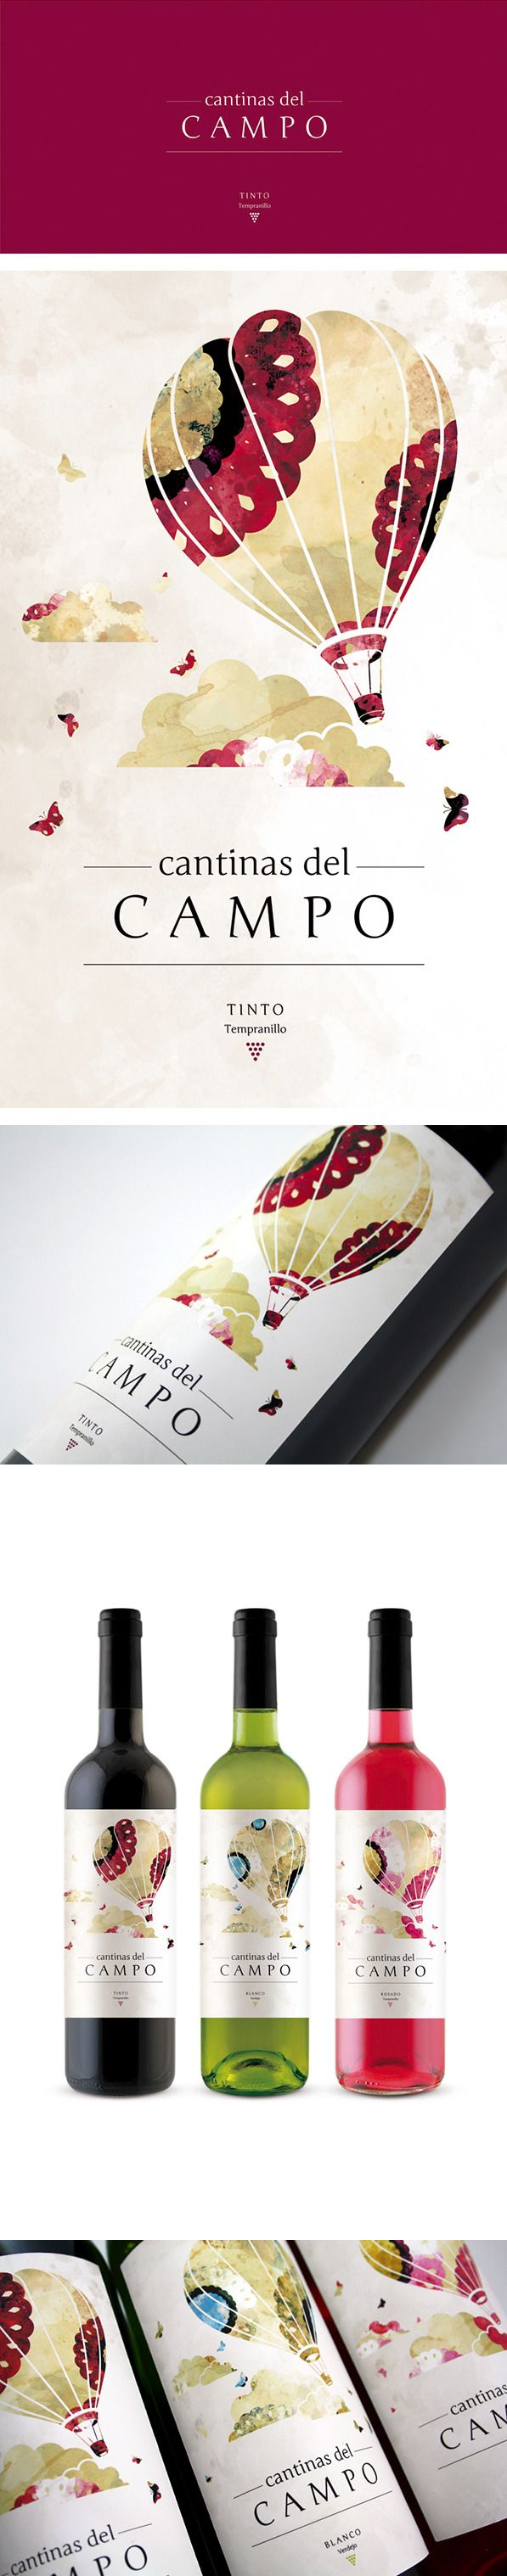 Wine label design · Cantinas del Campo by Giovanni Acquaviva